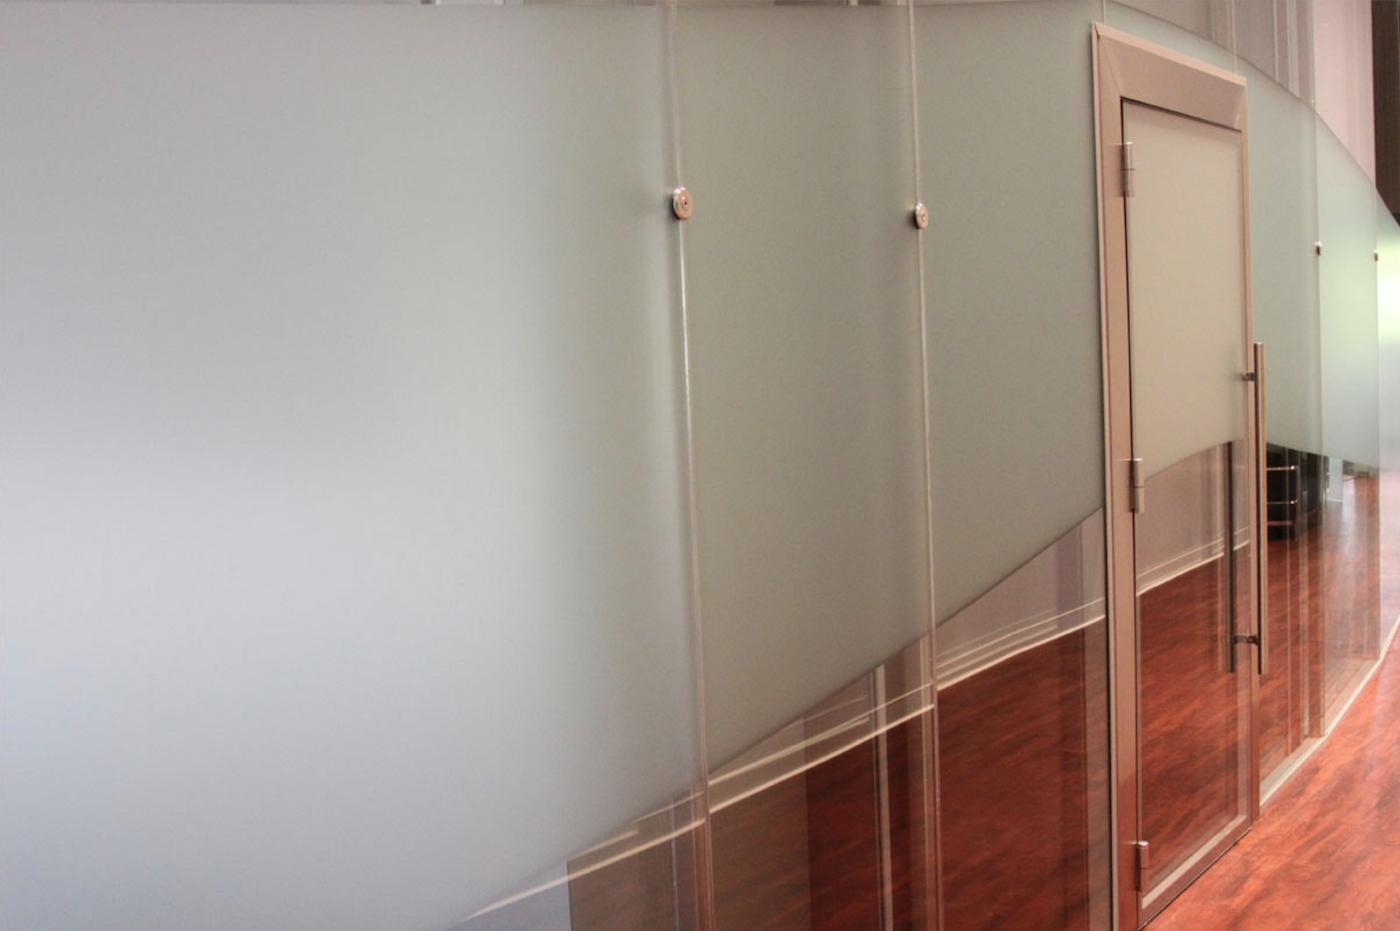 Acoustic double glazed doors can be fitted with hinges or pivots